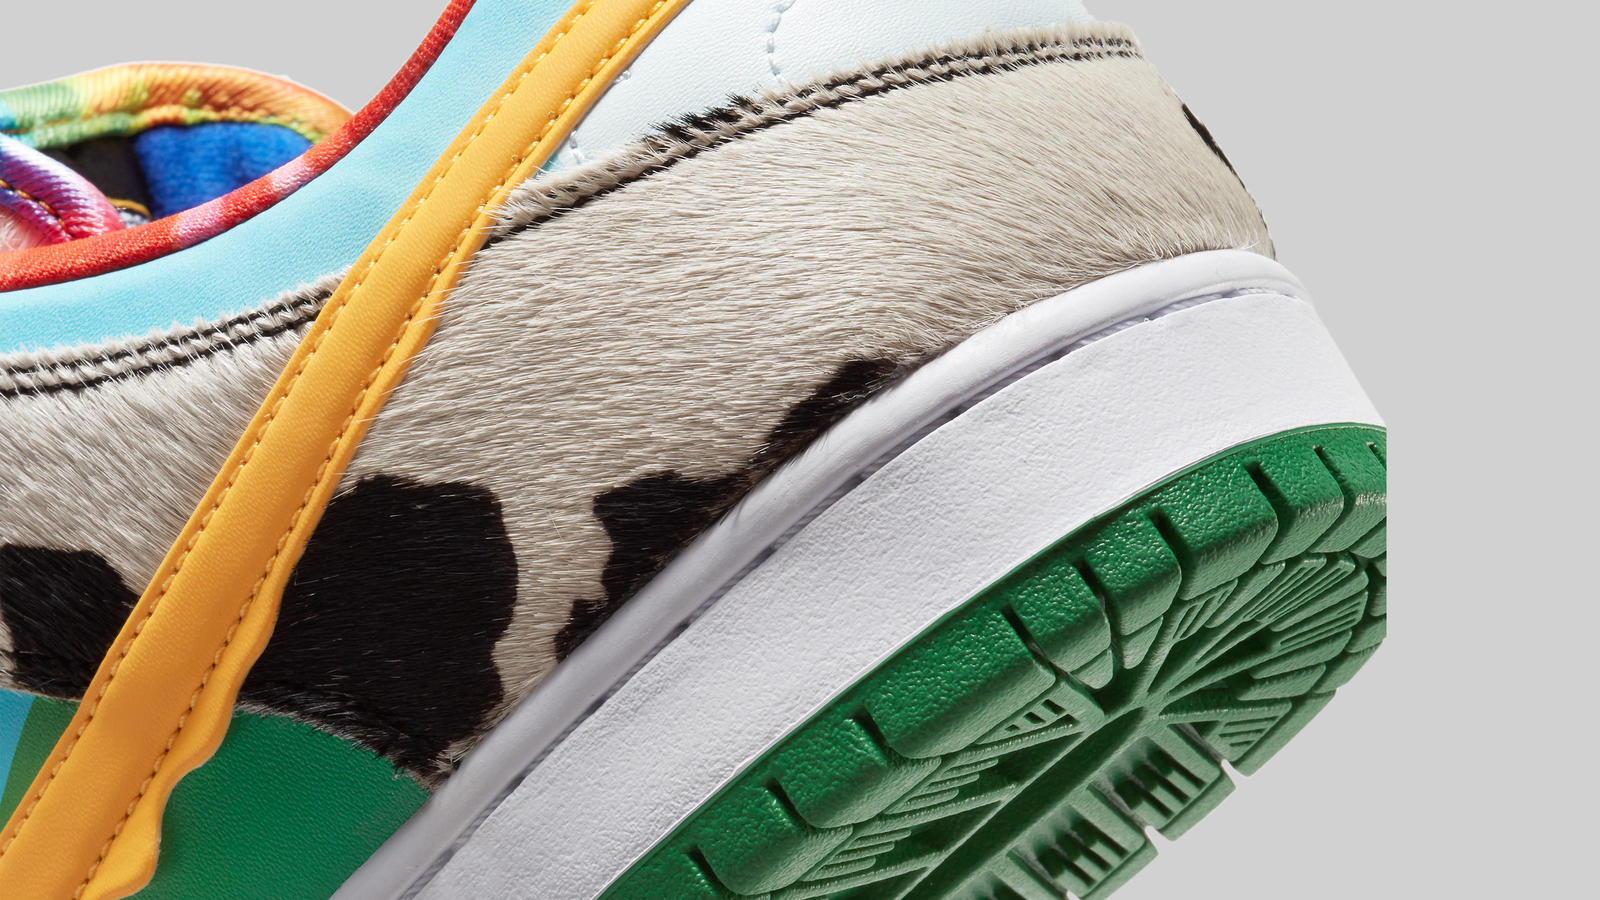 Nike Dunk Low Pro Ben & Jerry's Official Images and Release Date ...